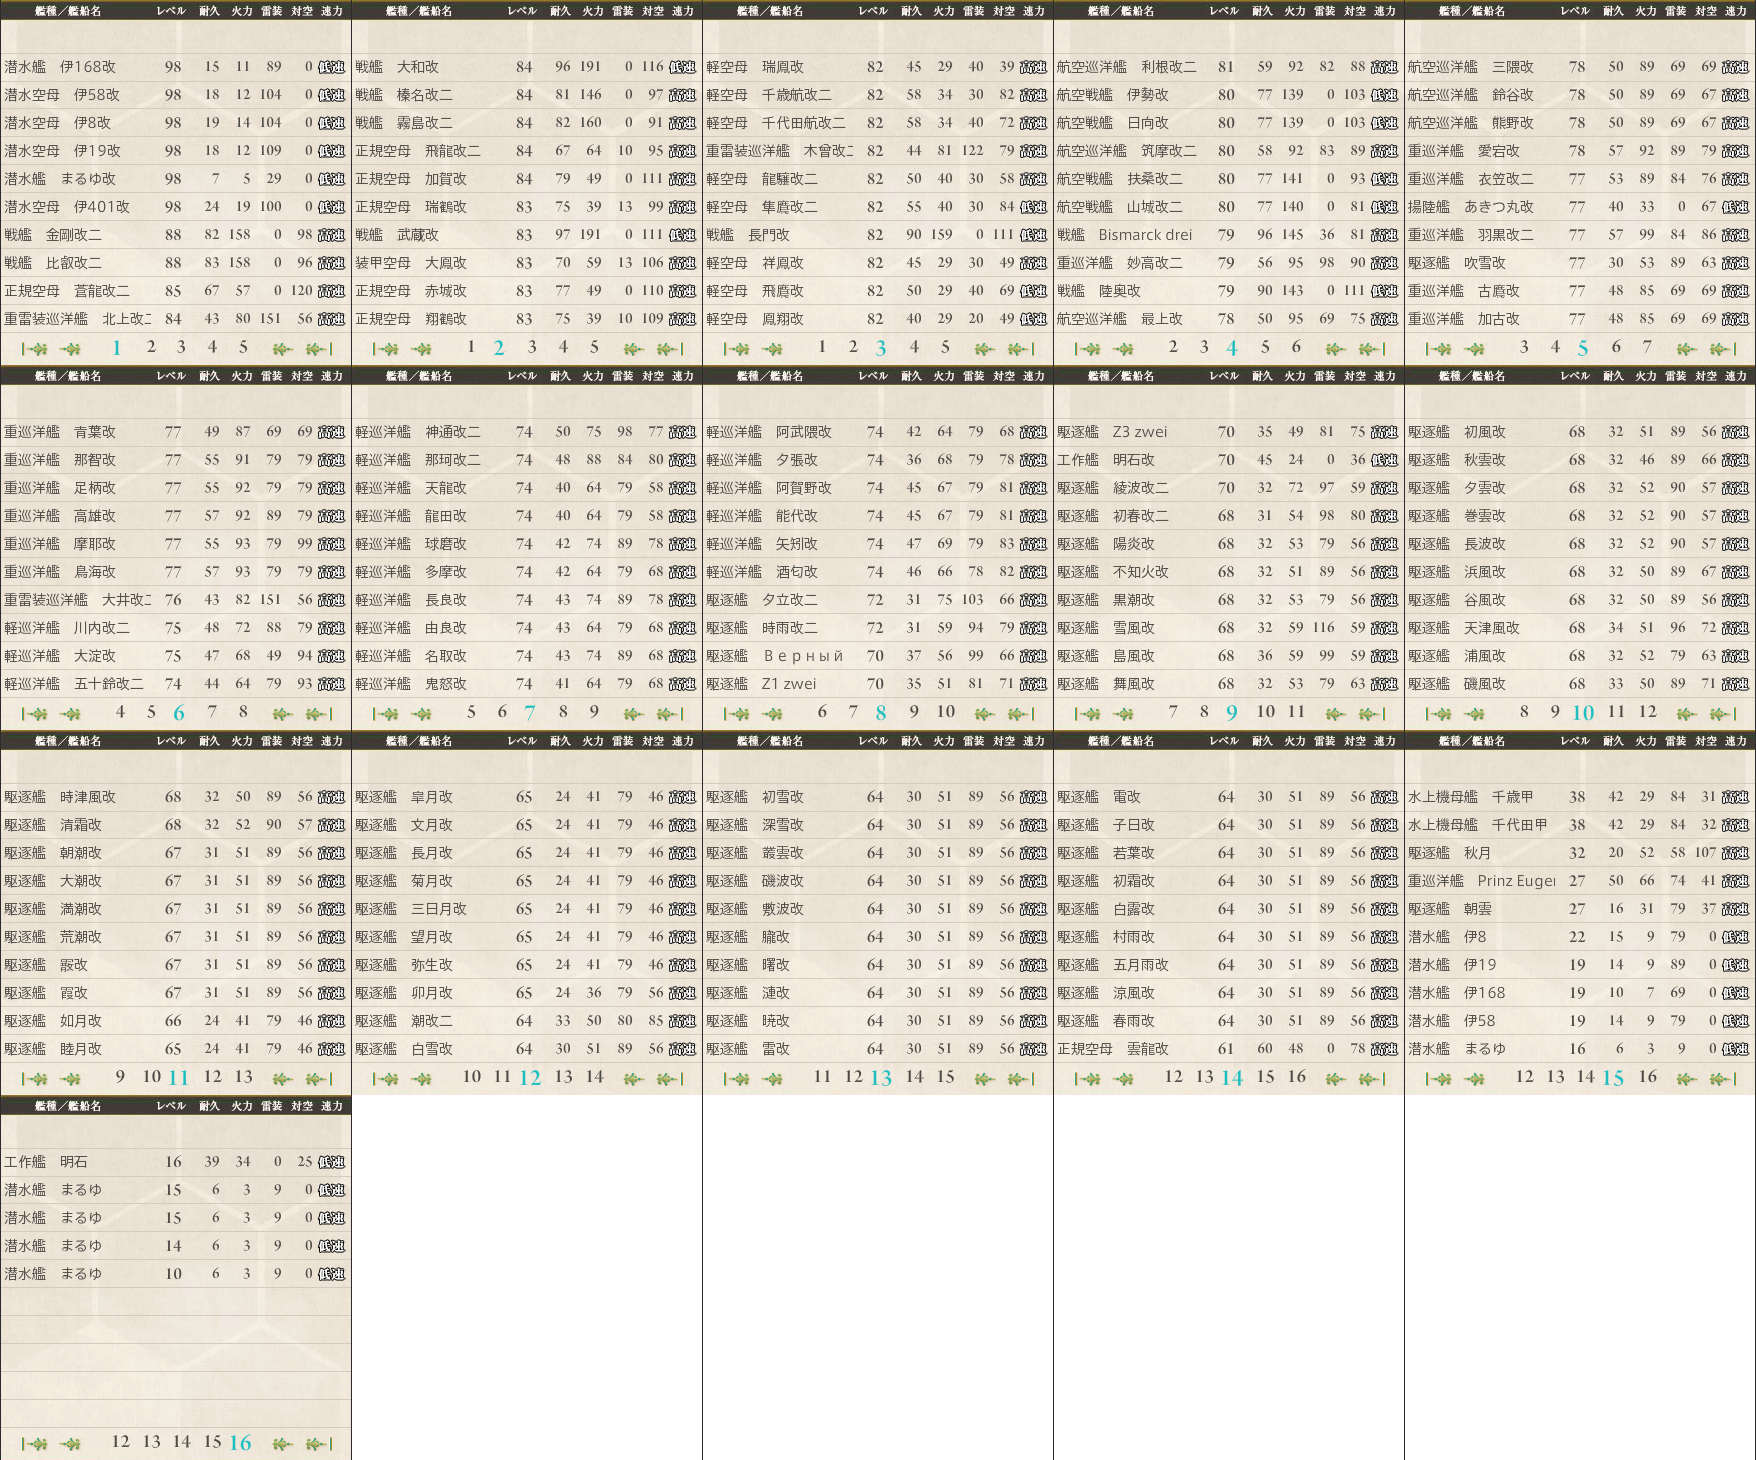 data.kancolle.levelsort.20141123.png